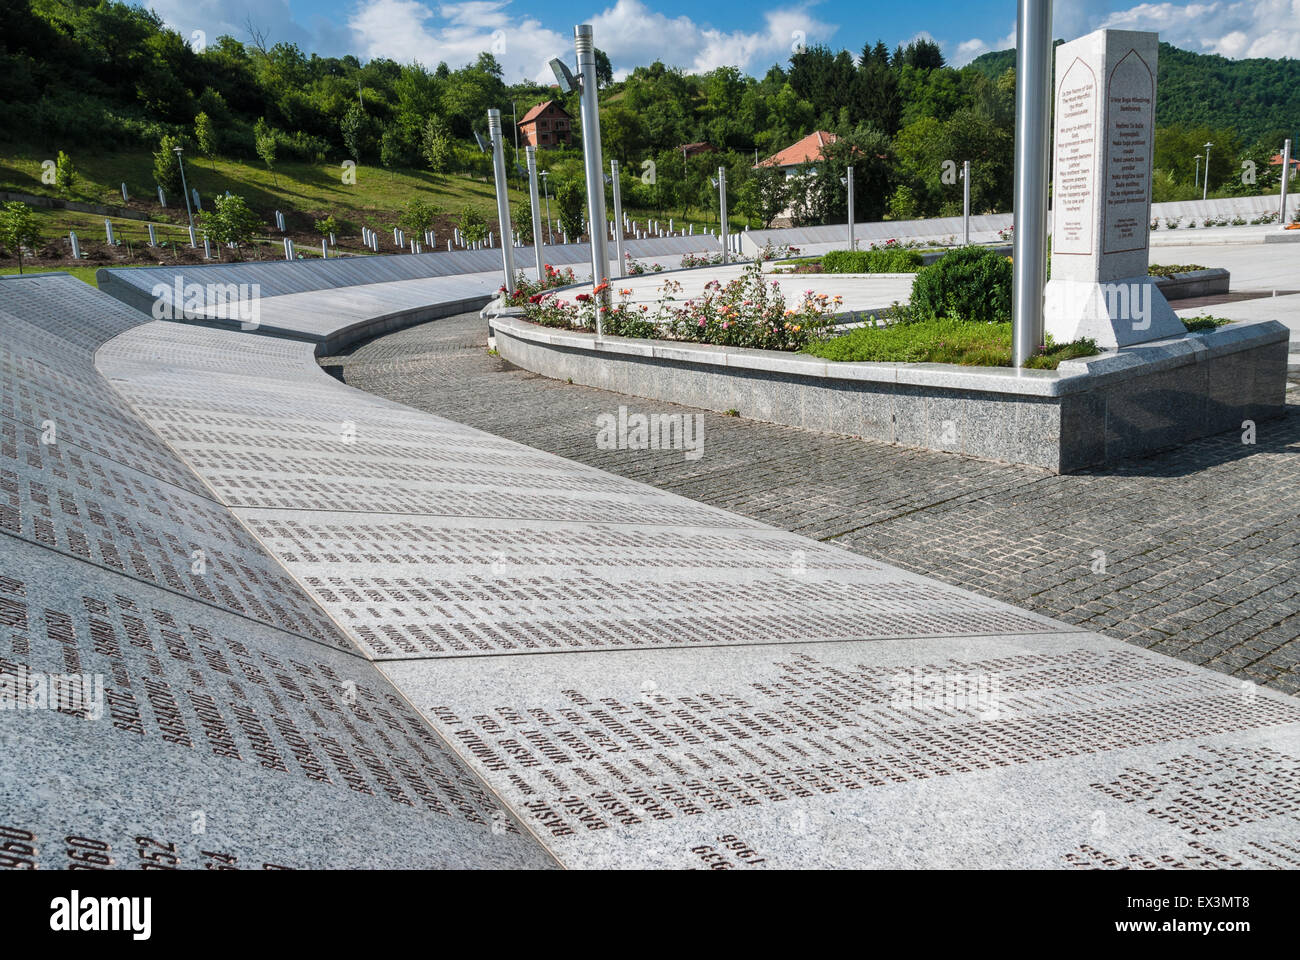 Part of the Srebrenica Genocide Memorial on June 25, 2009 in Potocari, Bosnia and Herzegovina. Stock Photo